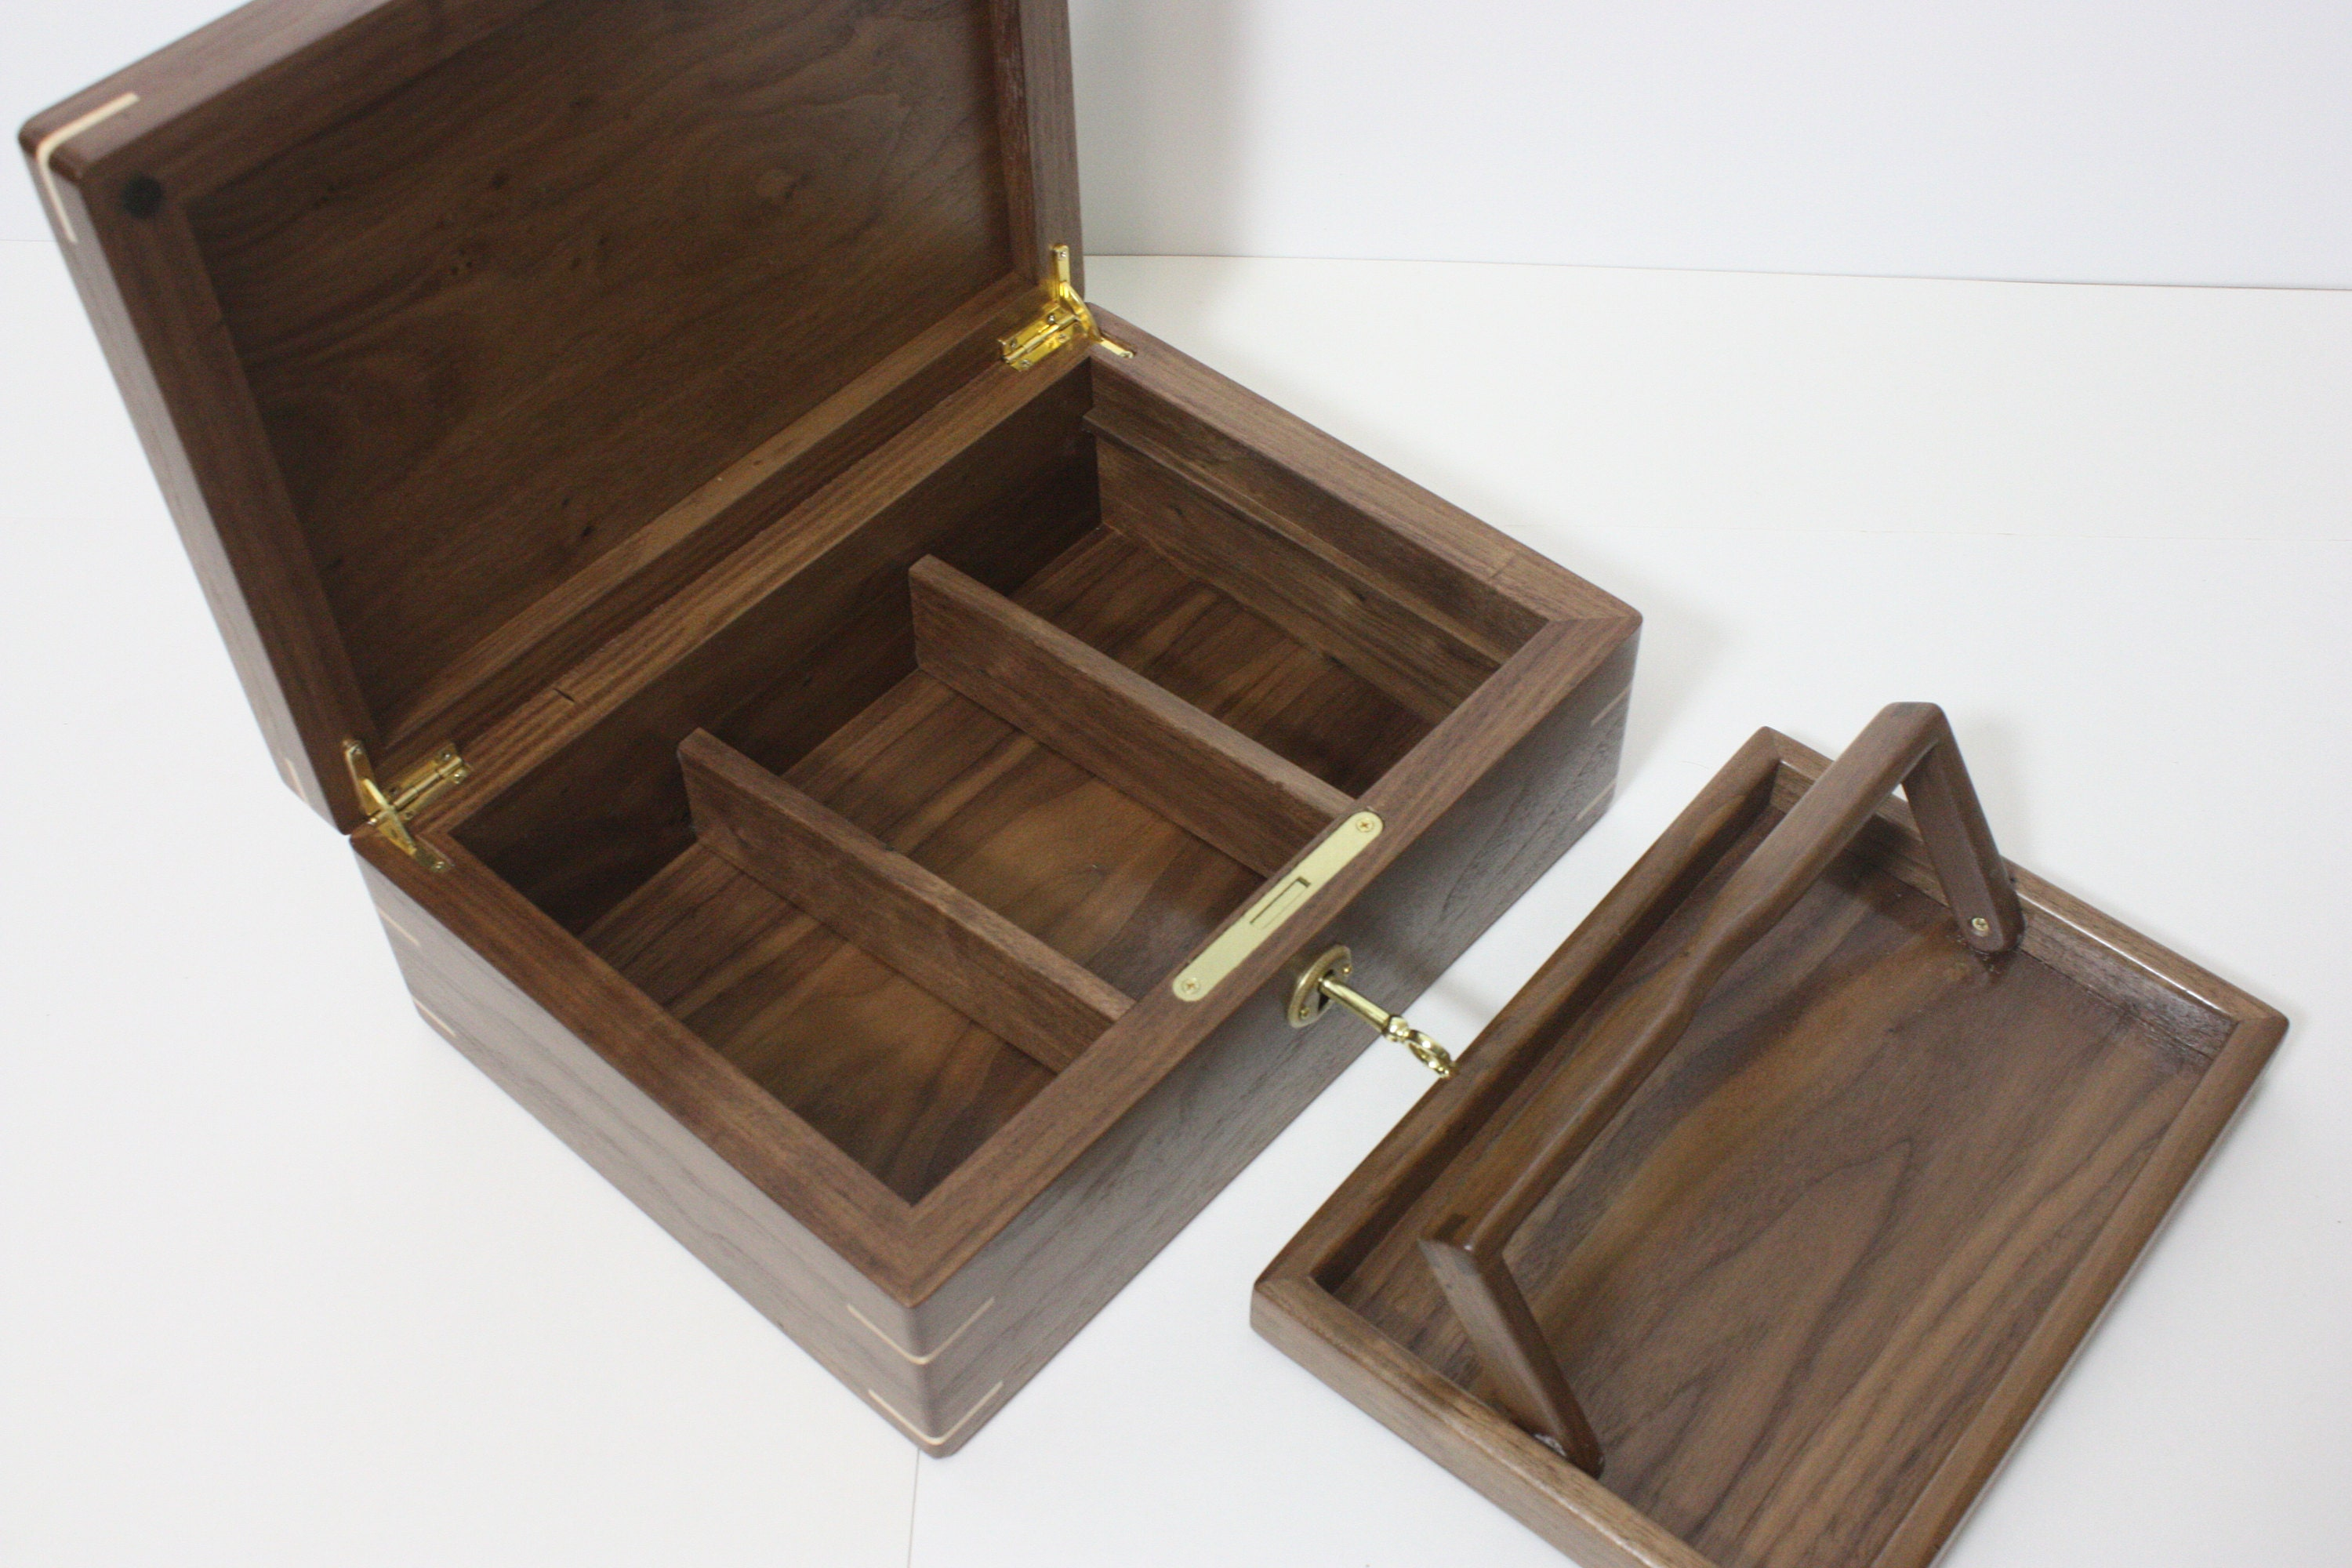 Walnut Box with Dividers and a Lift Out Tray